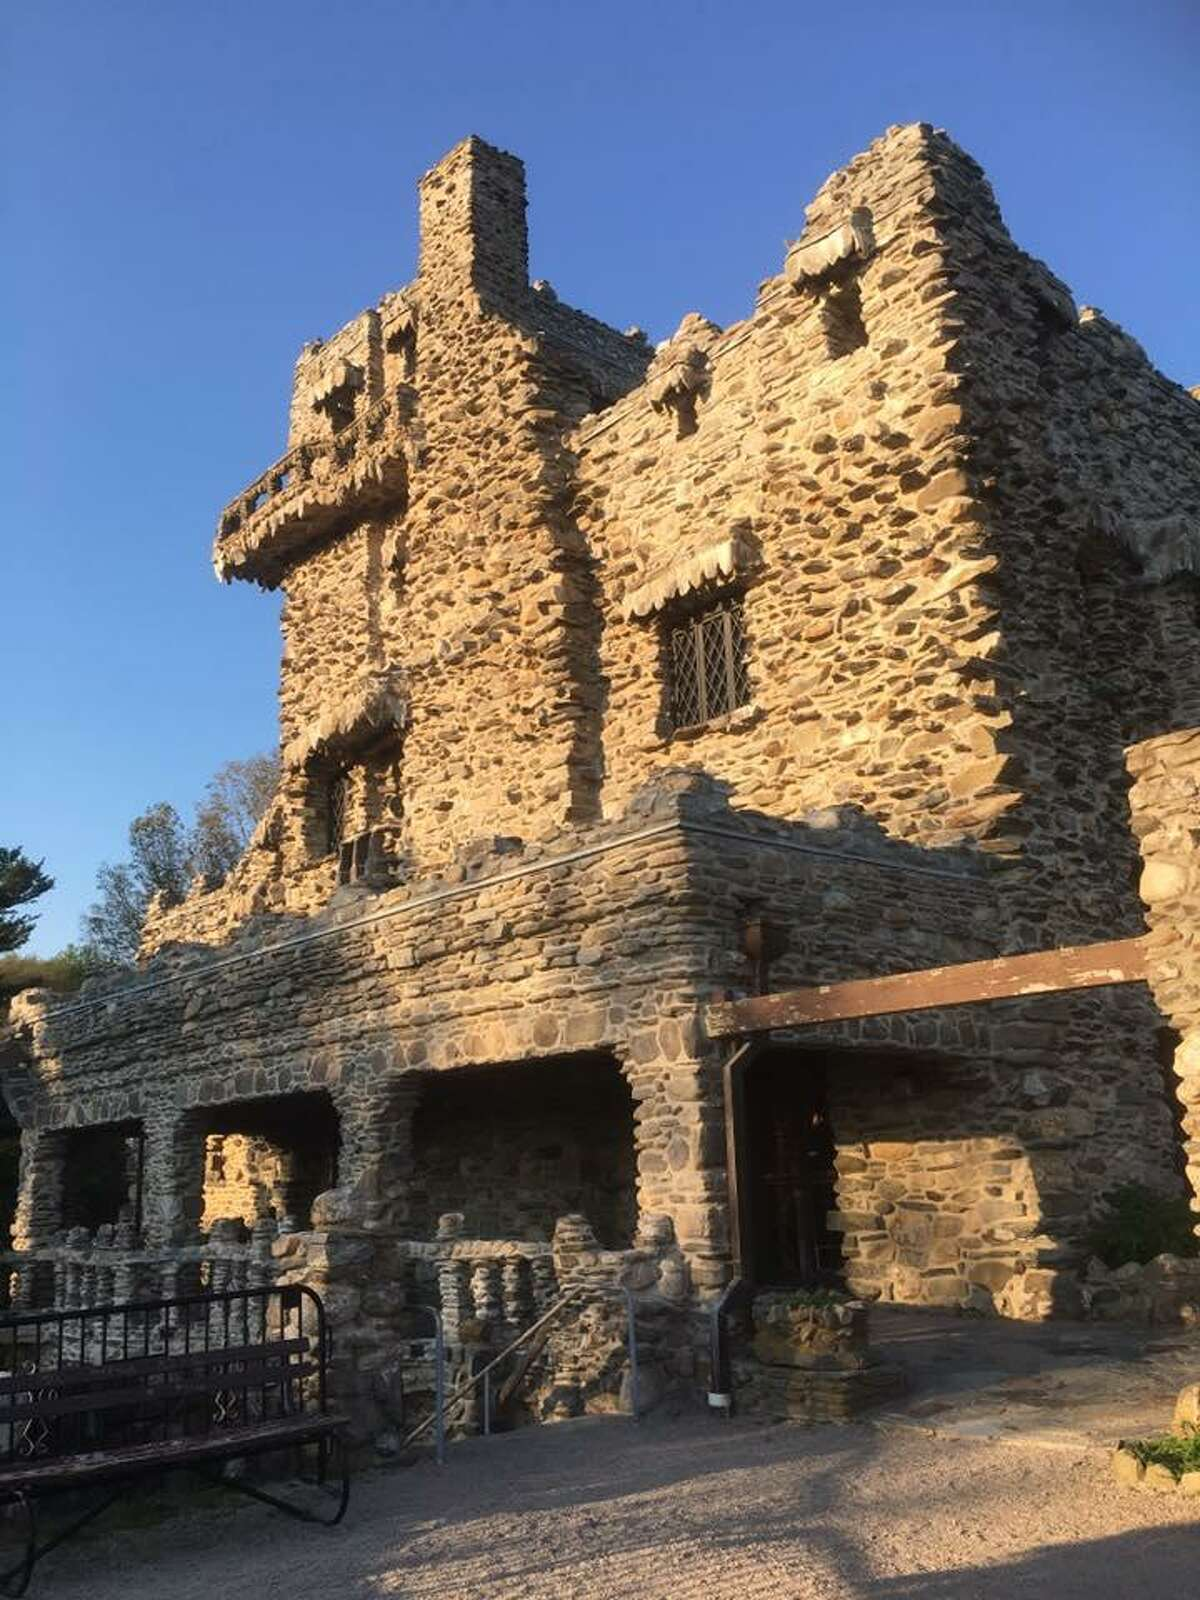 Gillette Castle in East Haddam is part of this weekend's East Haddam Fall Celebration, Friday through Sunday, Oct. 5-7.